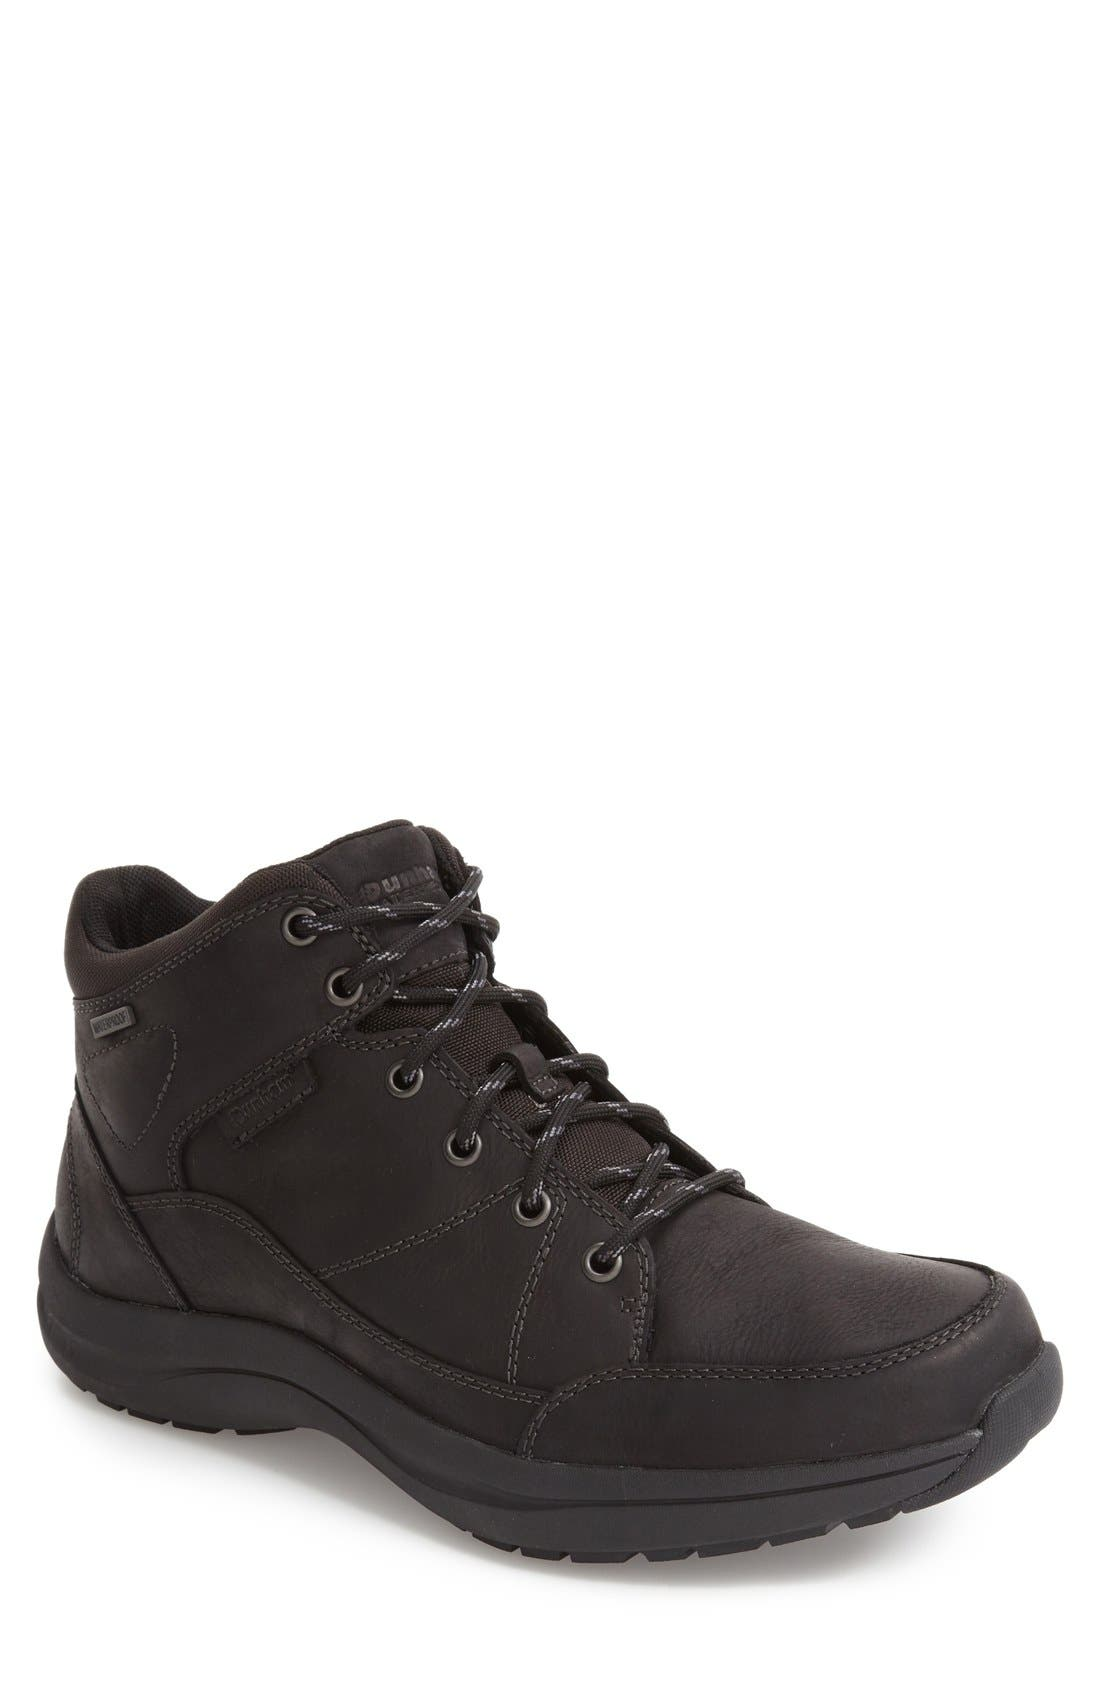 Dunham Simon-Dun Waterproof Boot (Men)